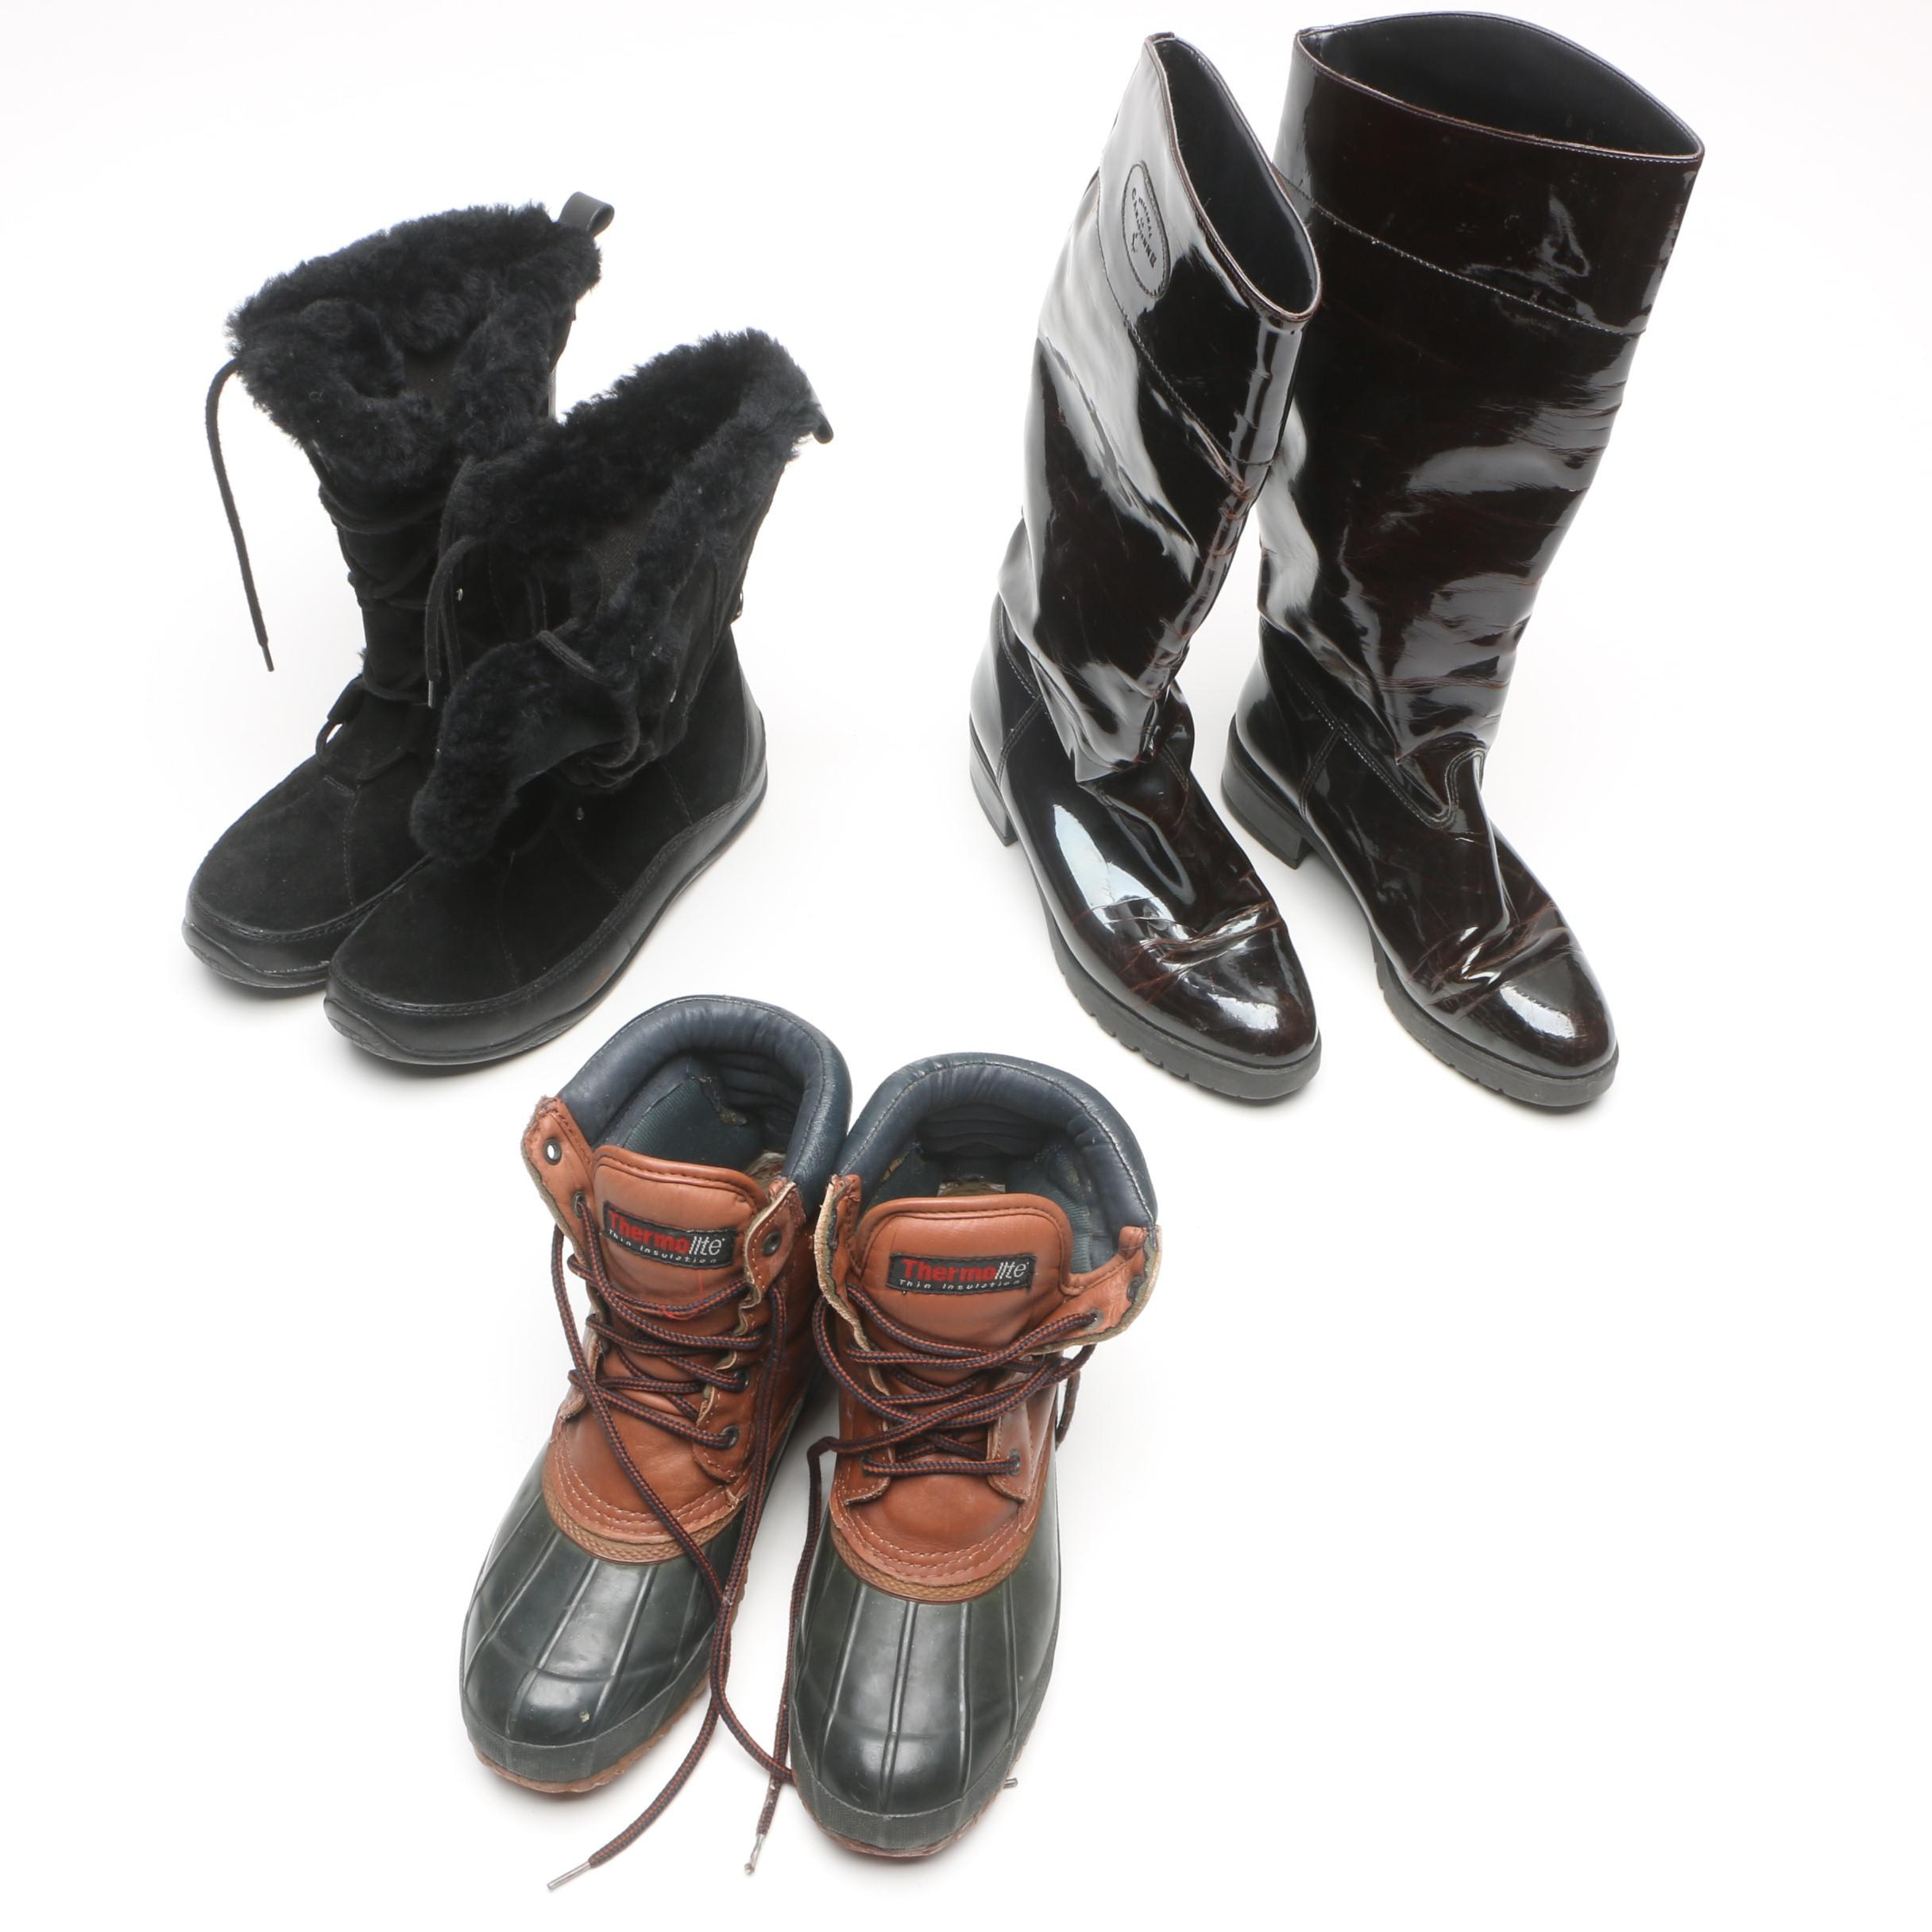 Women's Boots Including The North Face And La Canadienne